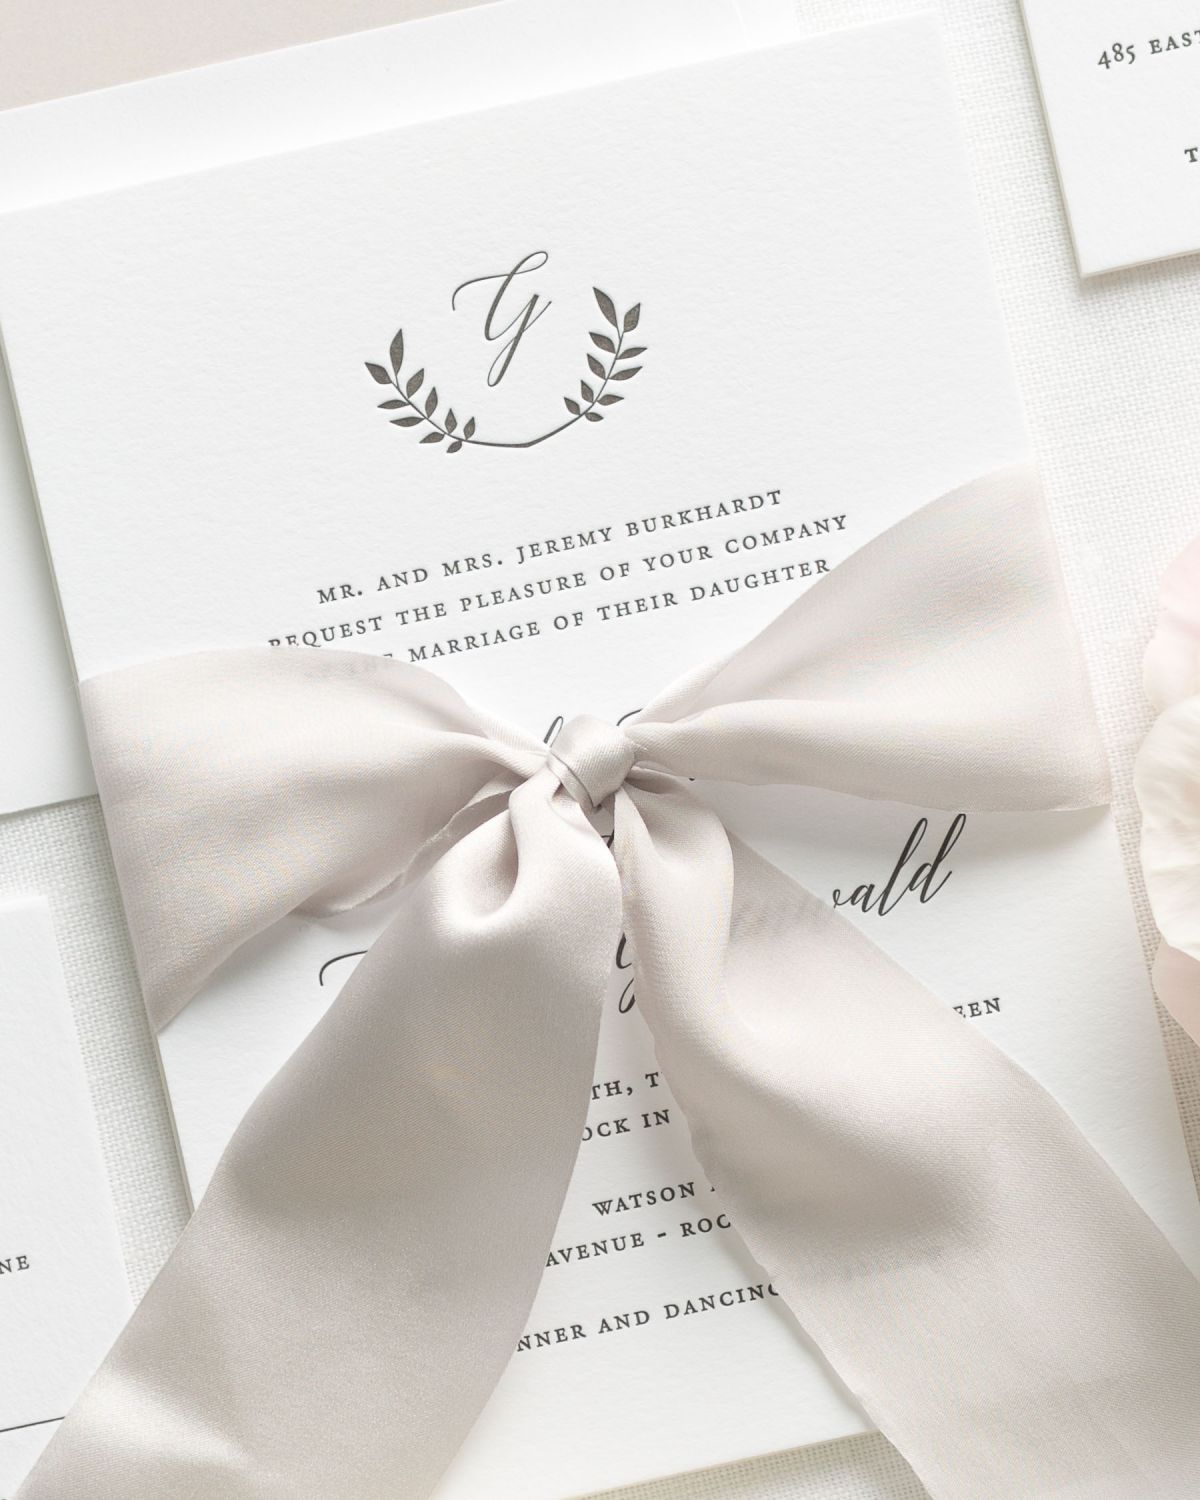 Calligraphy Script Letterpress Invitations with a solid mocha envelope liner